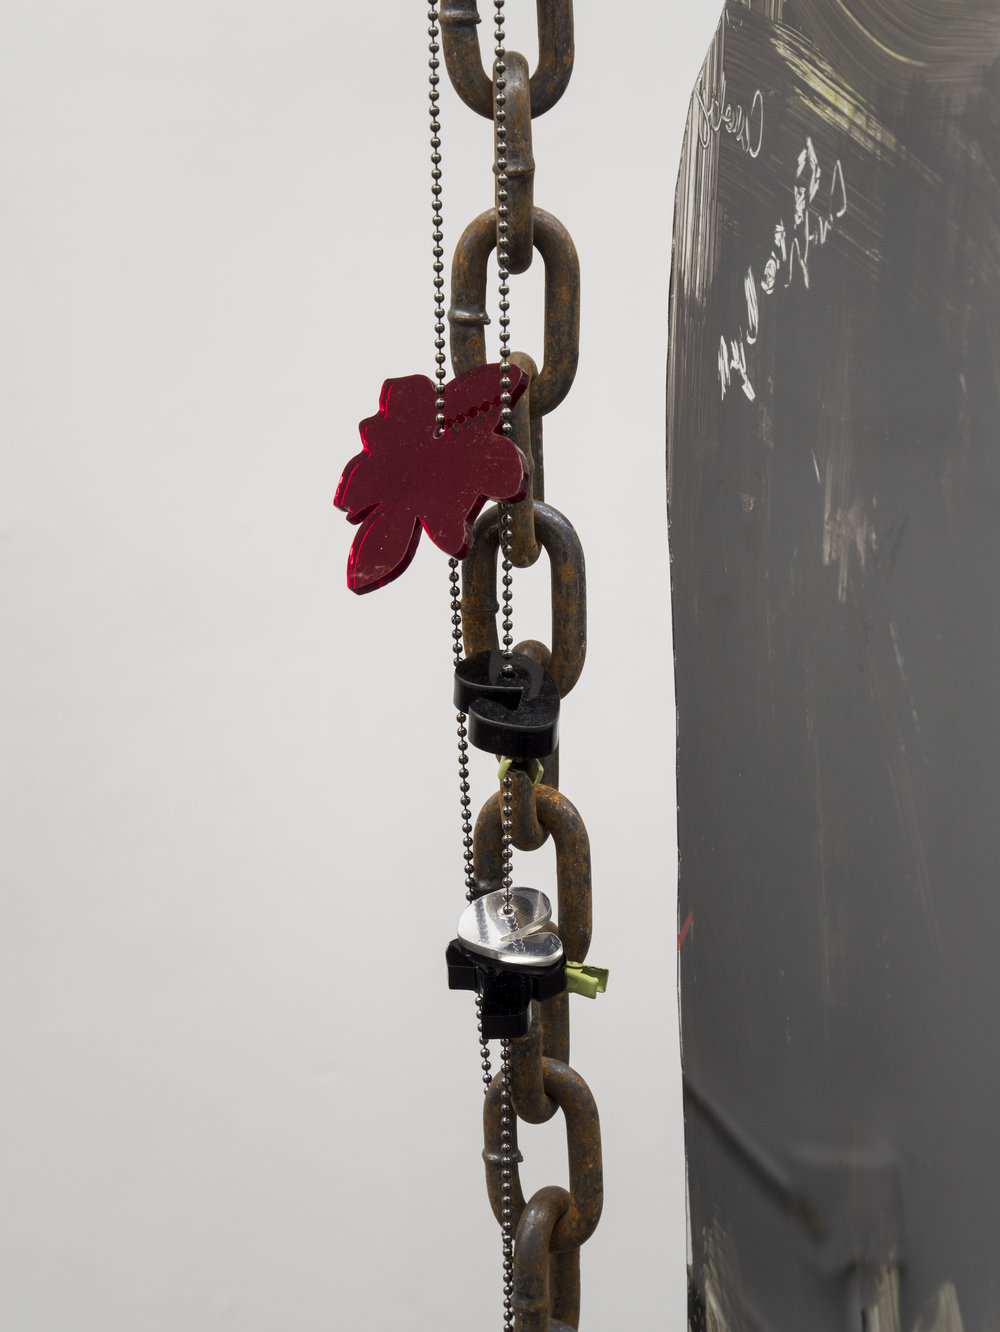 Raque Ford,  Get Double Flower Wet (detail),  2017, acrylic paint on polypropelene, steel chain, and zip ties, 86 x 39 in